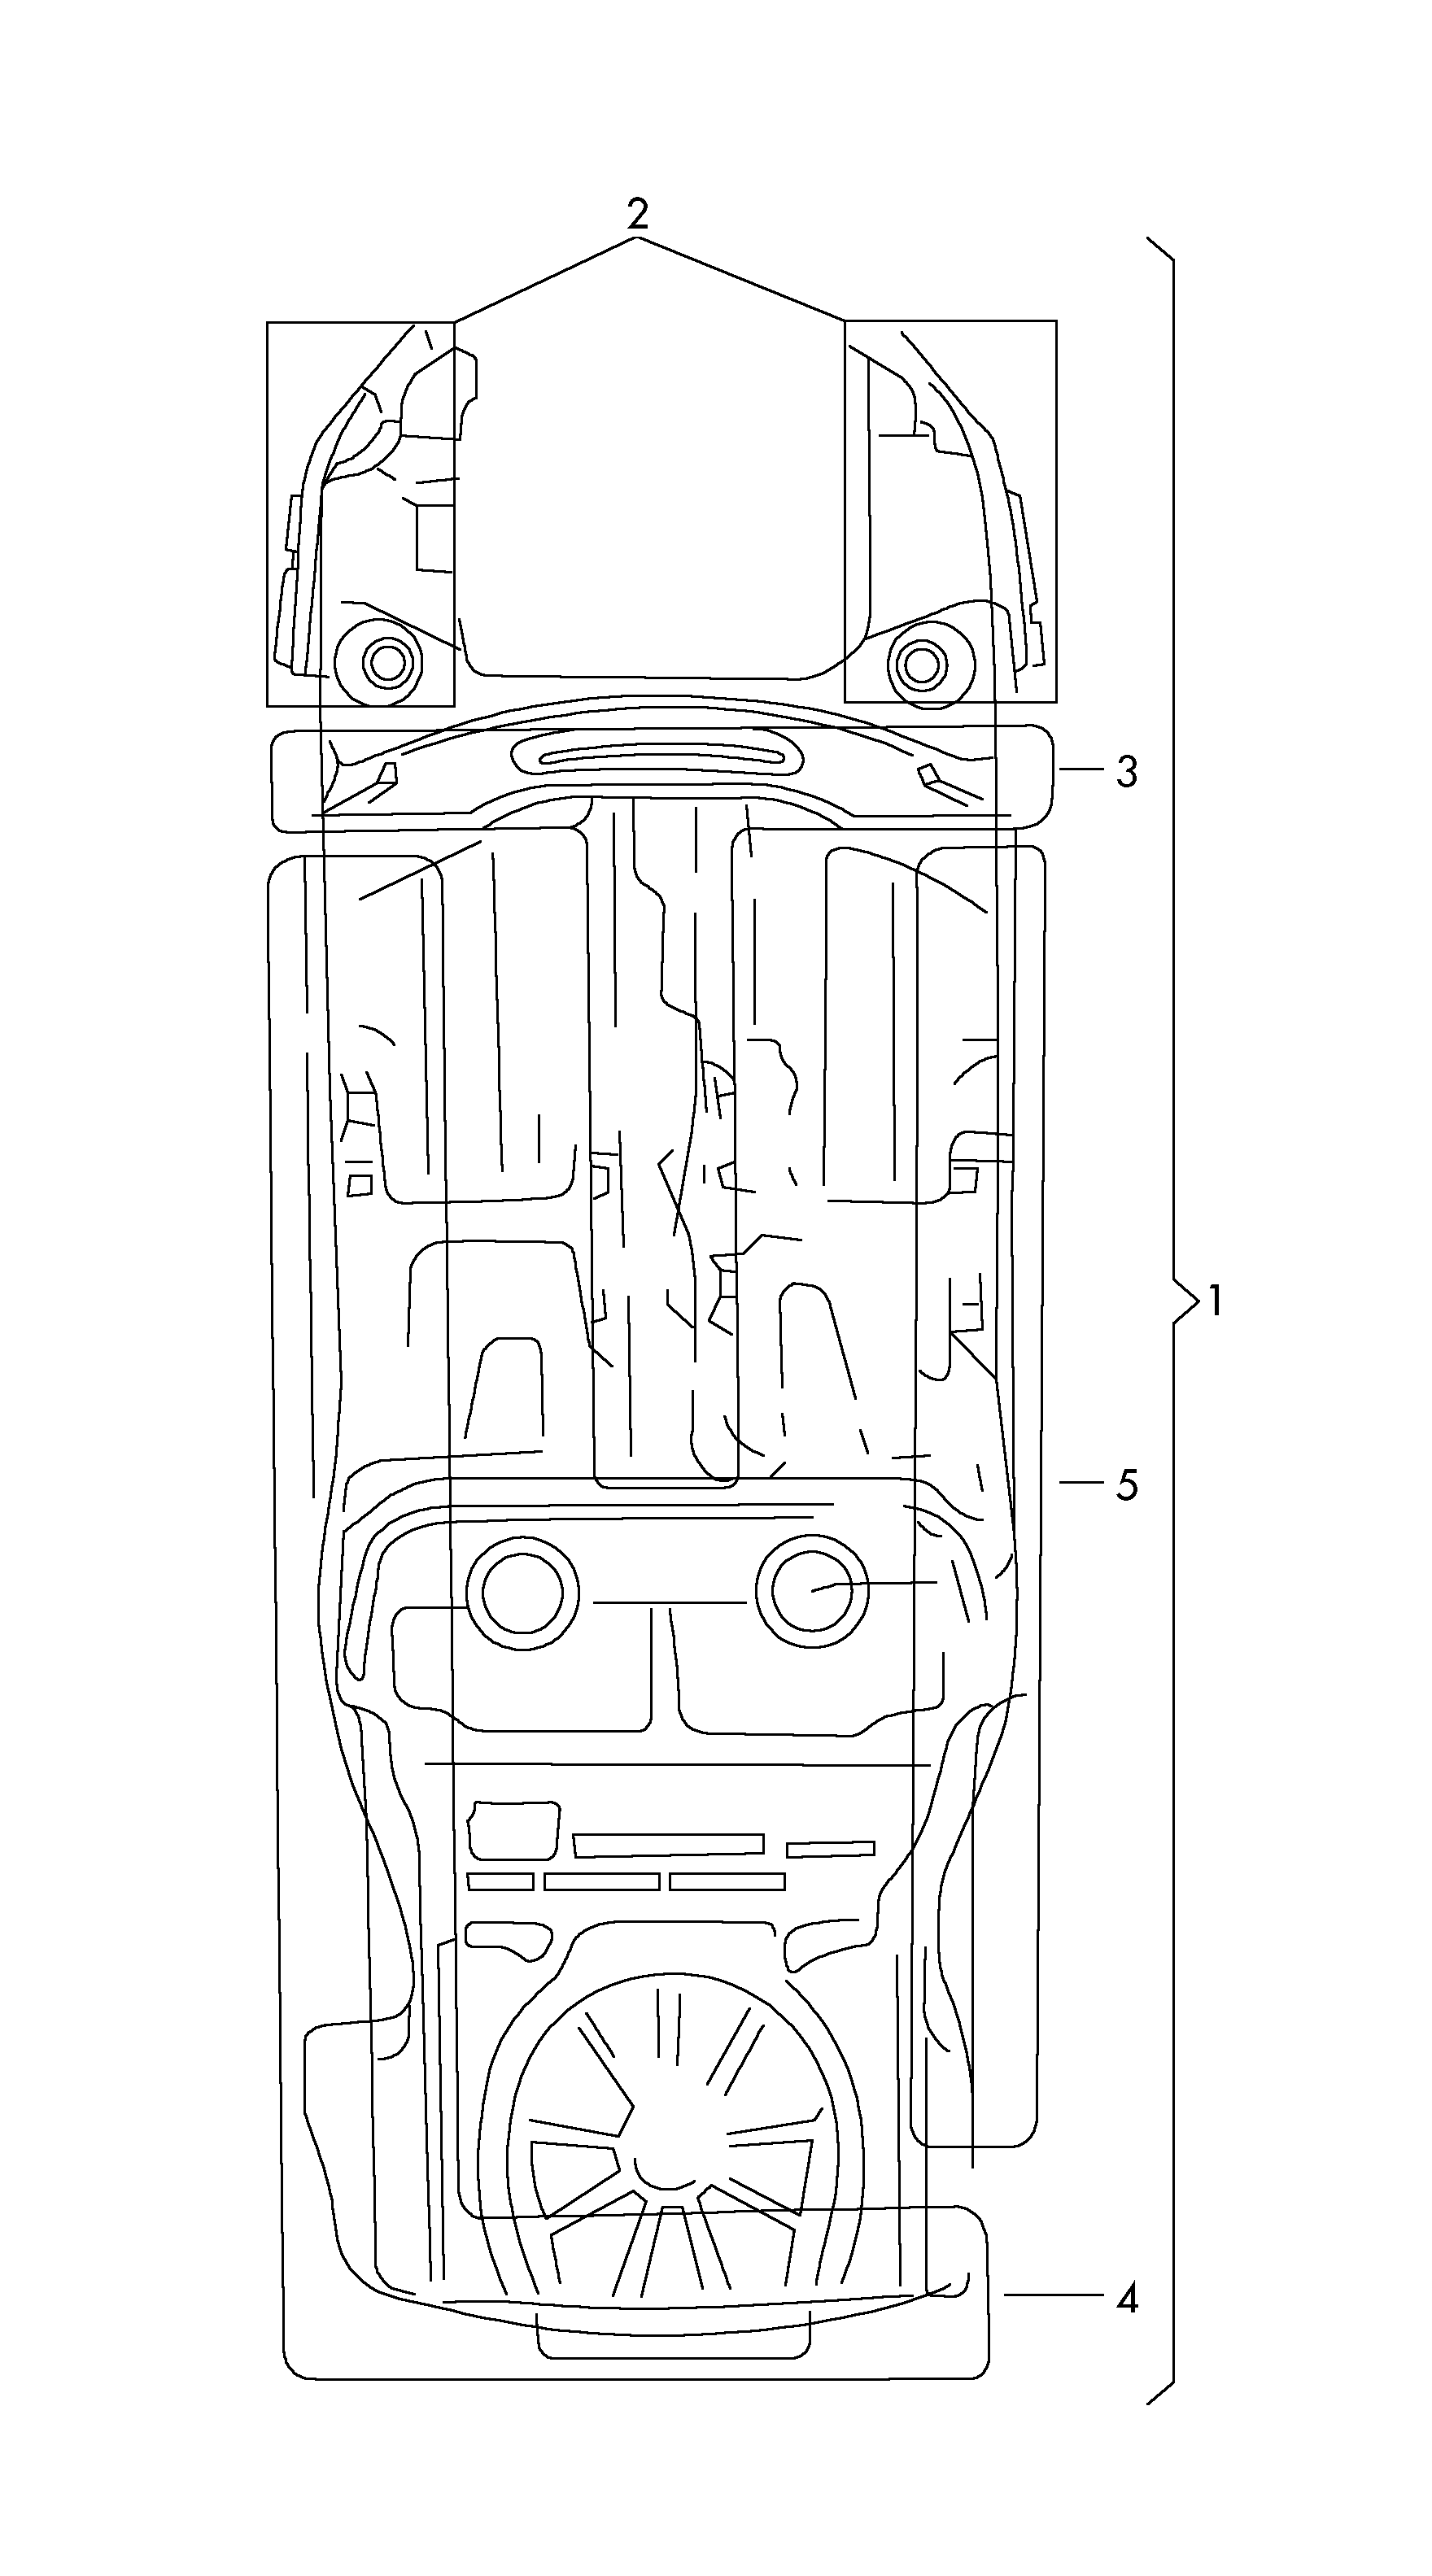 wiring diagram for jvc cd player